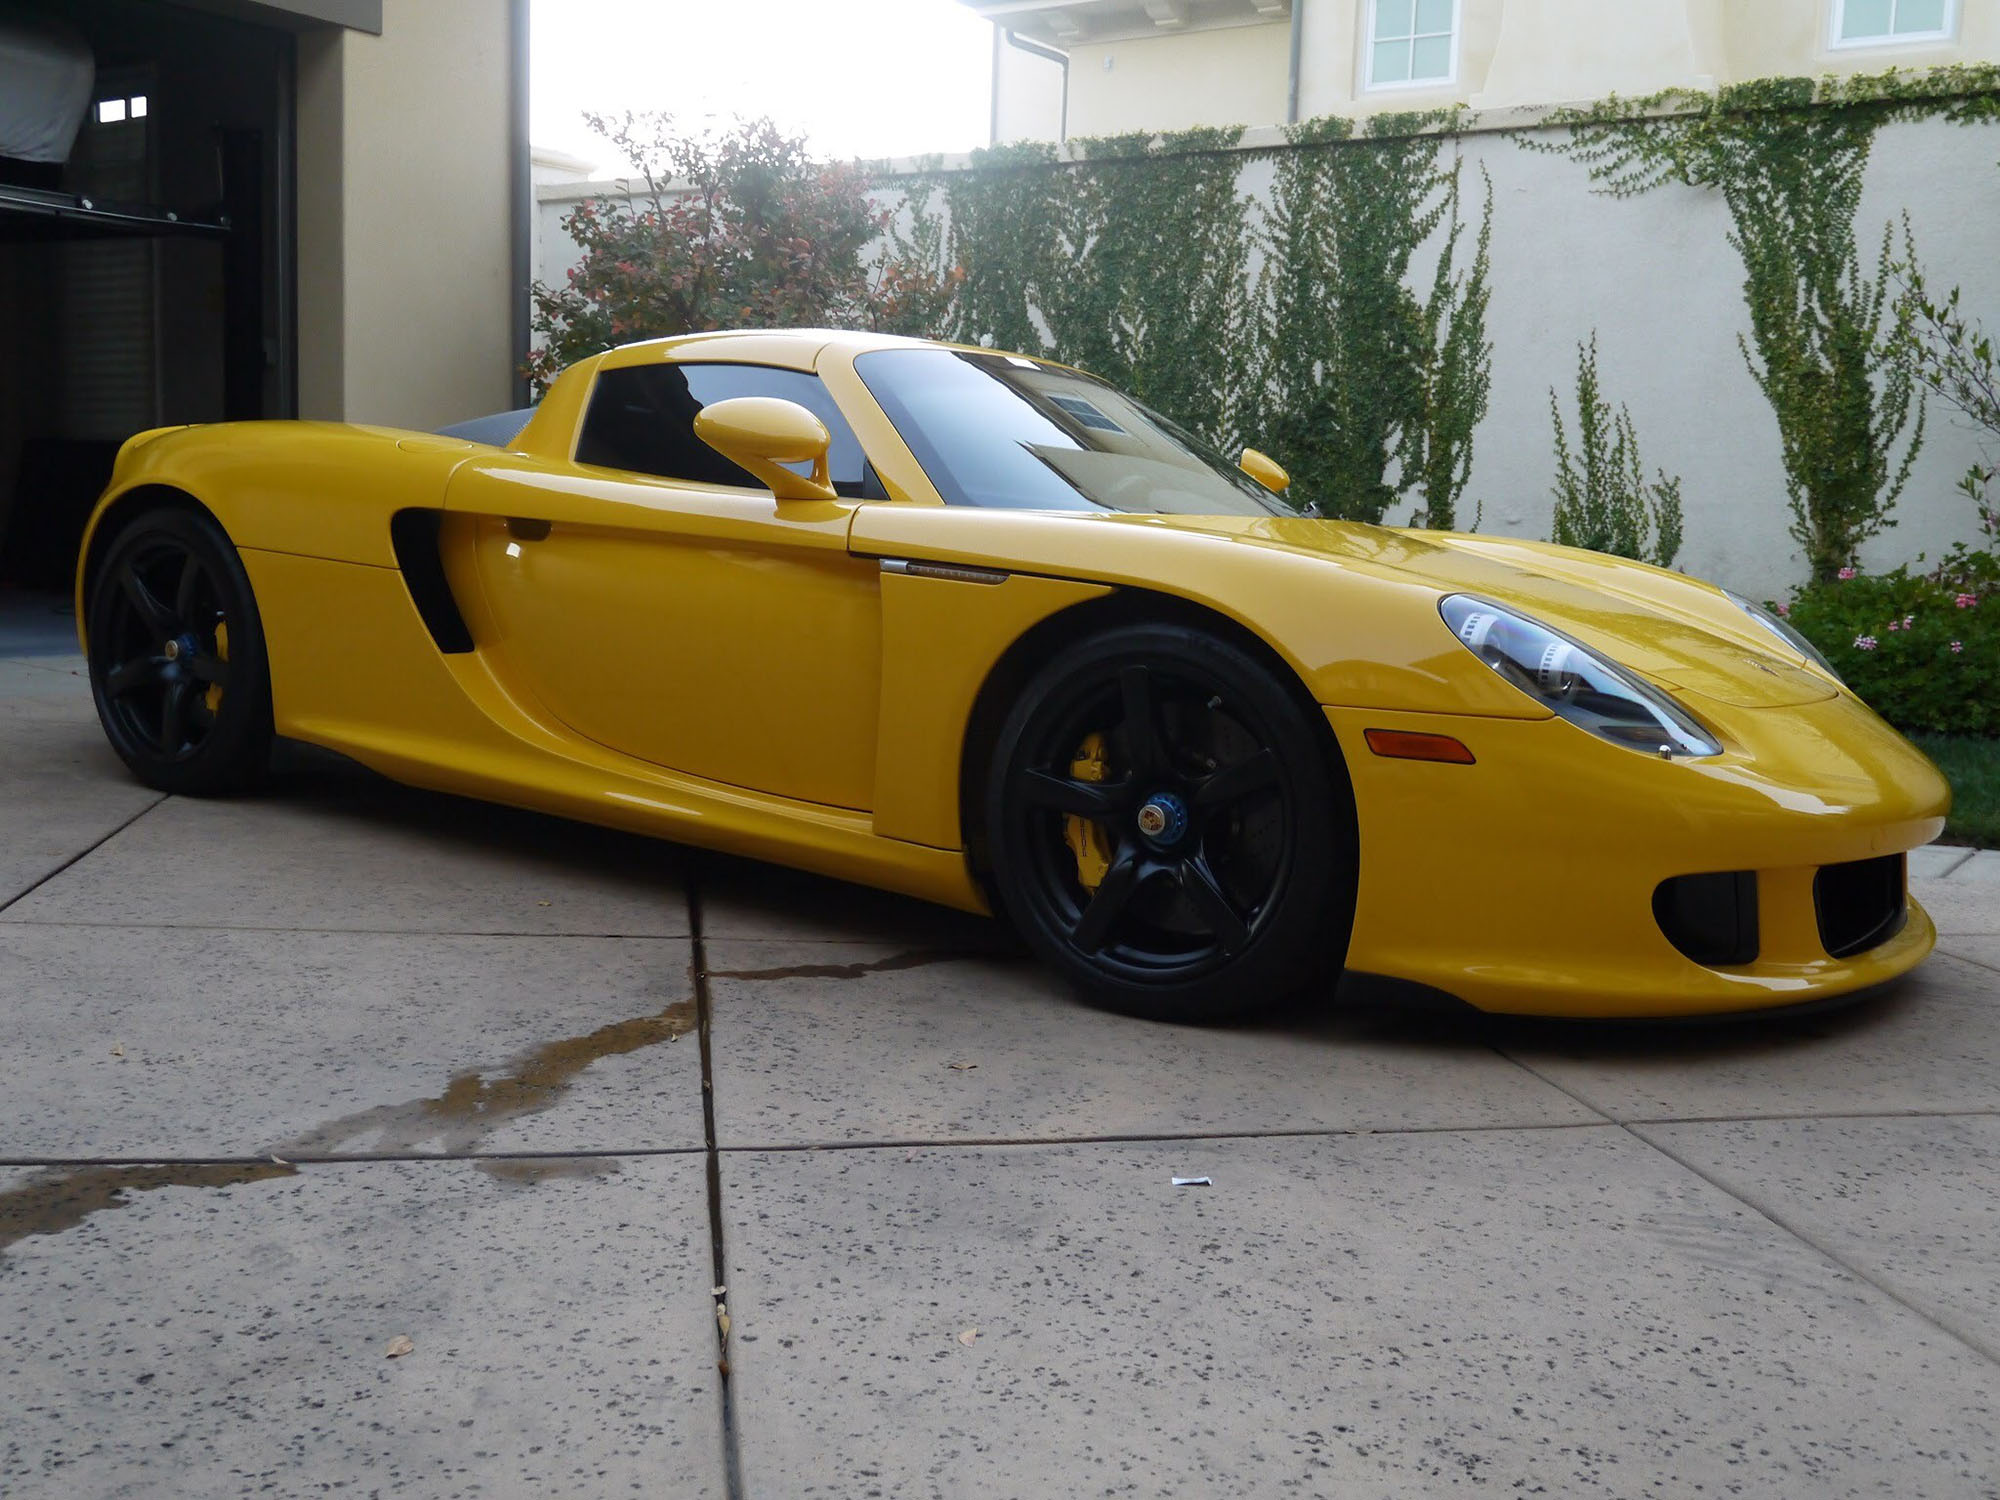 2005 Porsche Carrera GT in Fayence Yellow